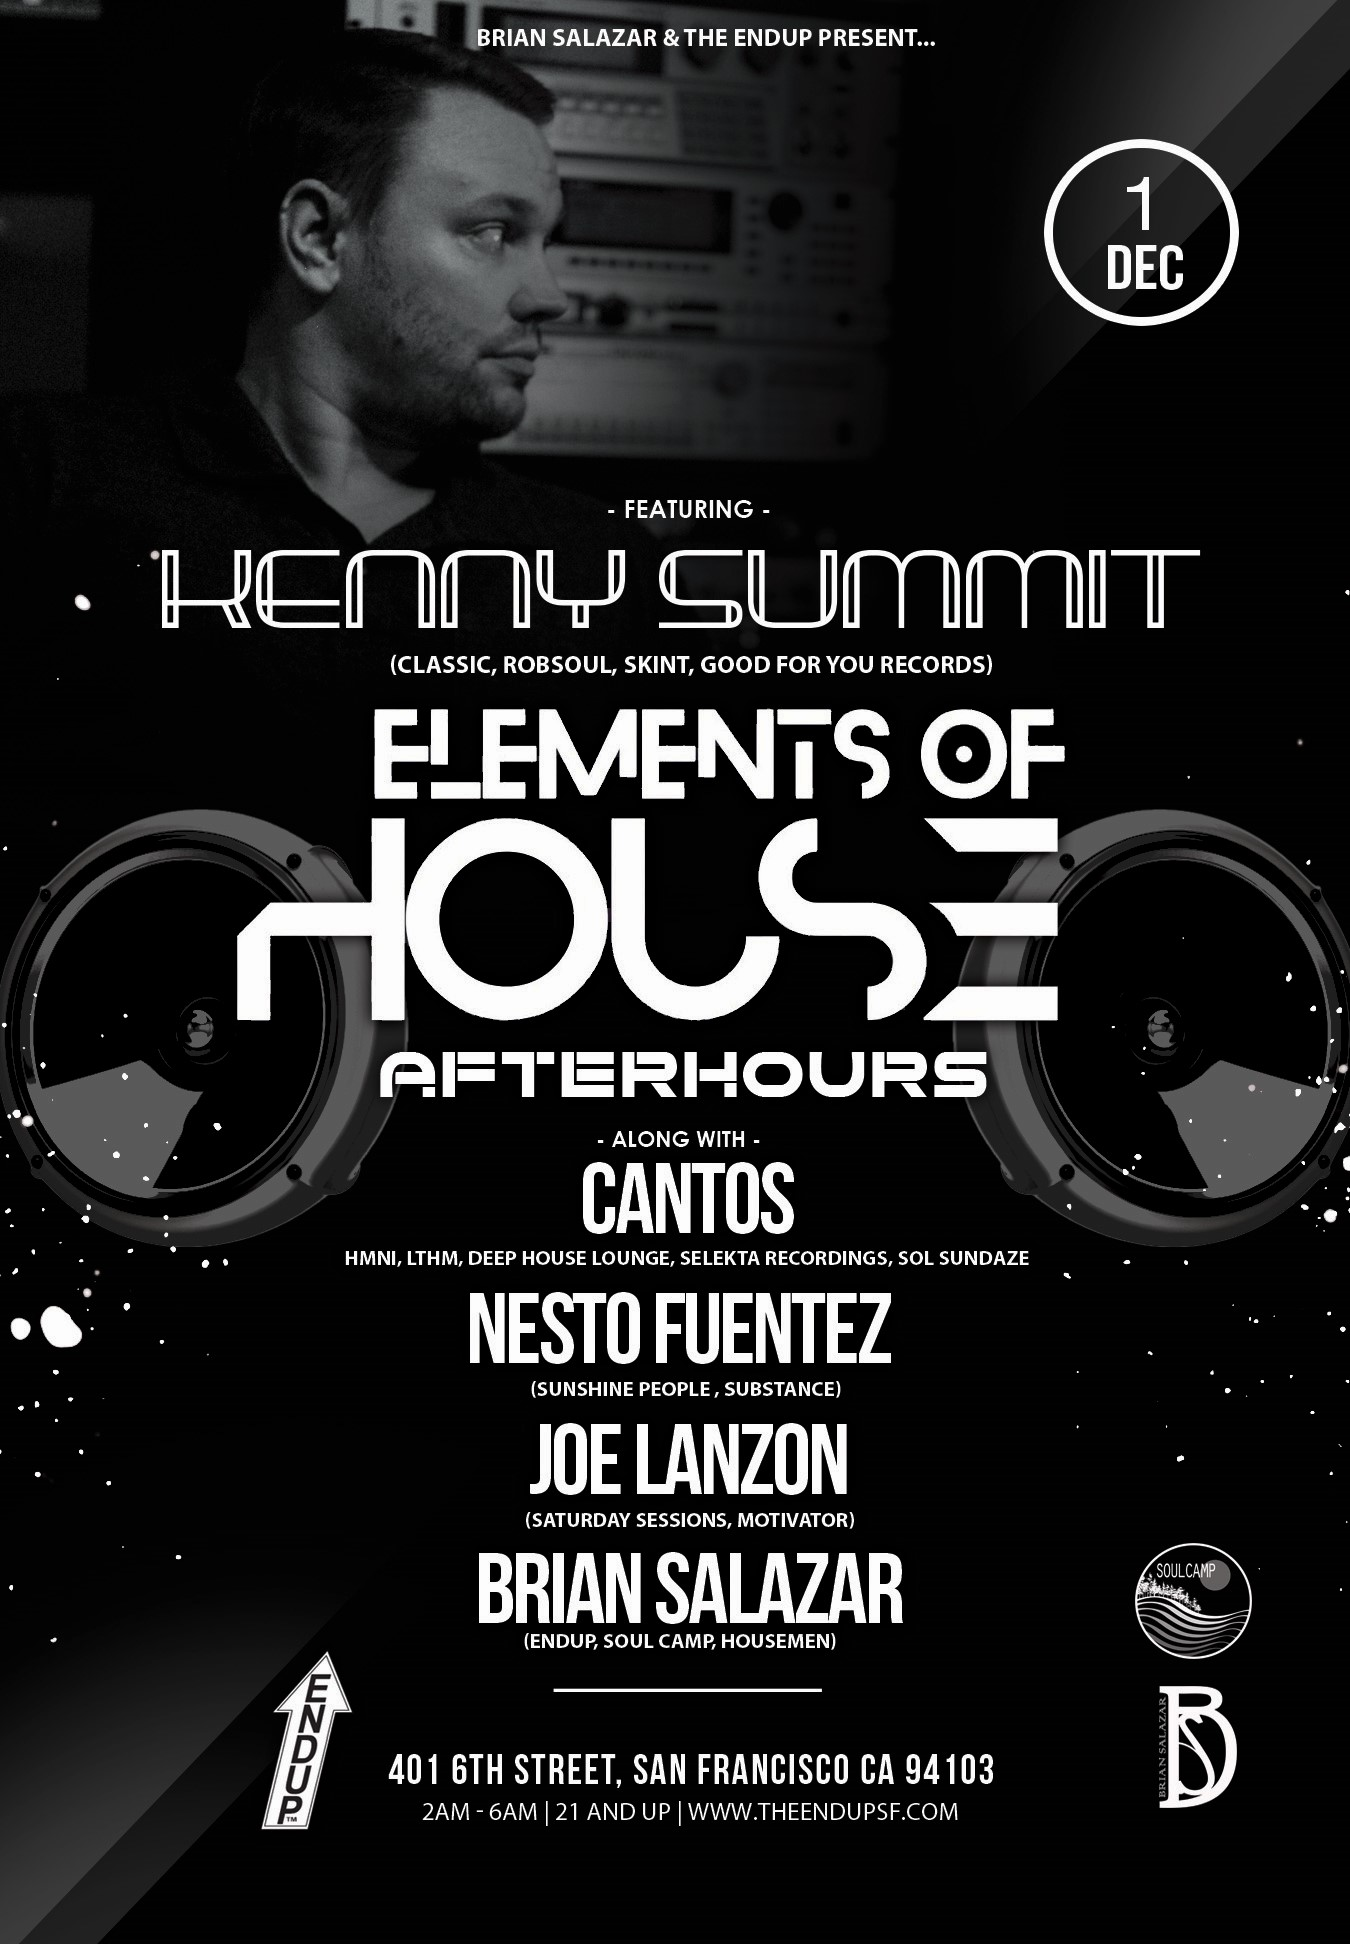 Elements of House